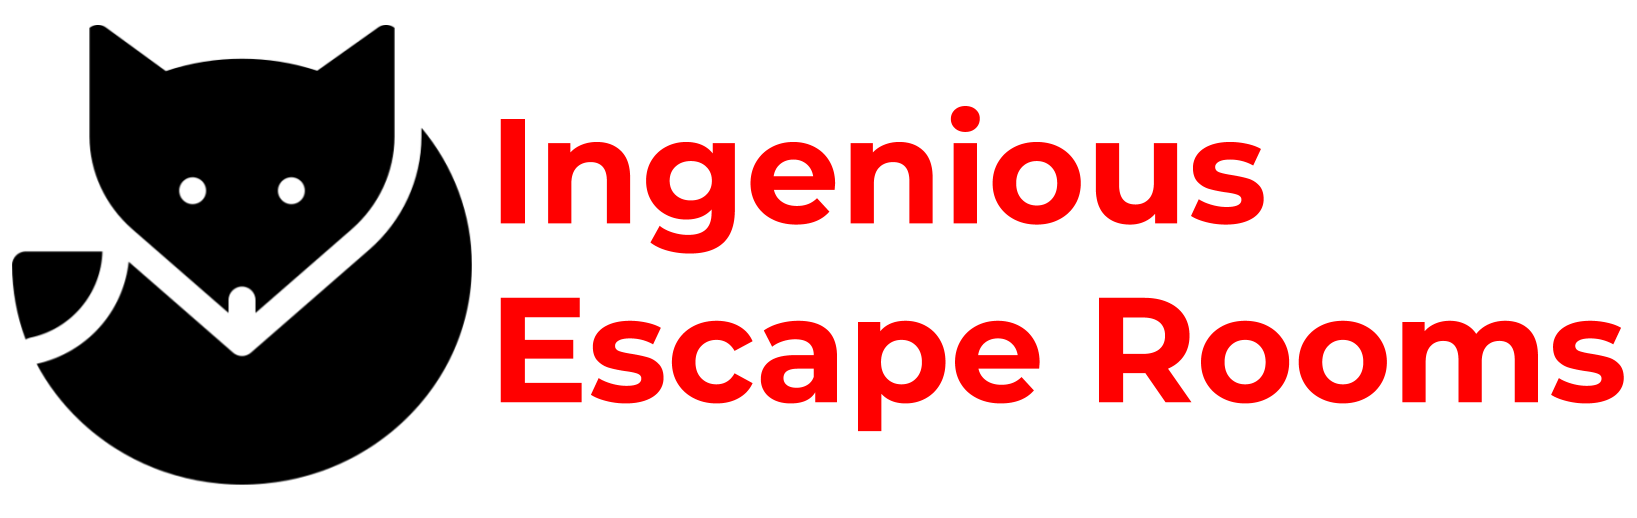 Ingenious Escape Rooms |   cropped-Untitled-drawing.jpg